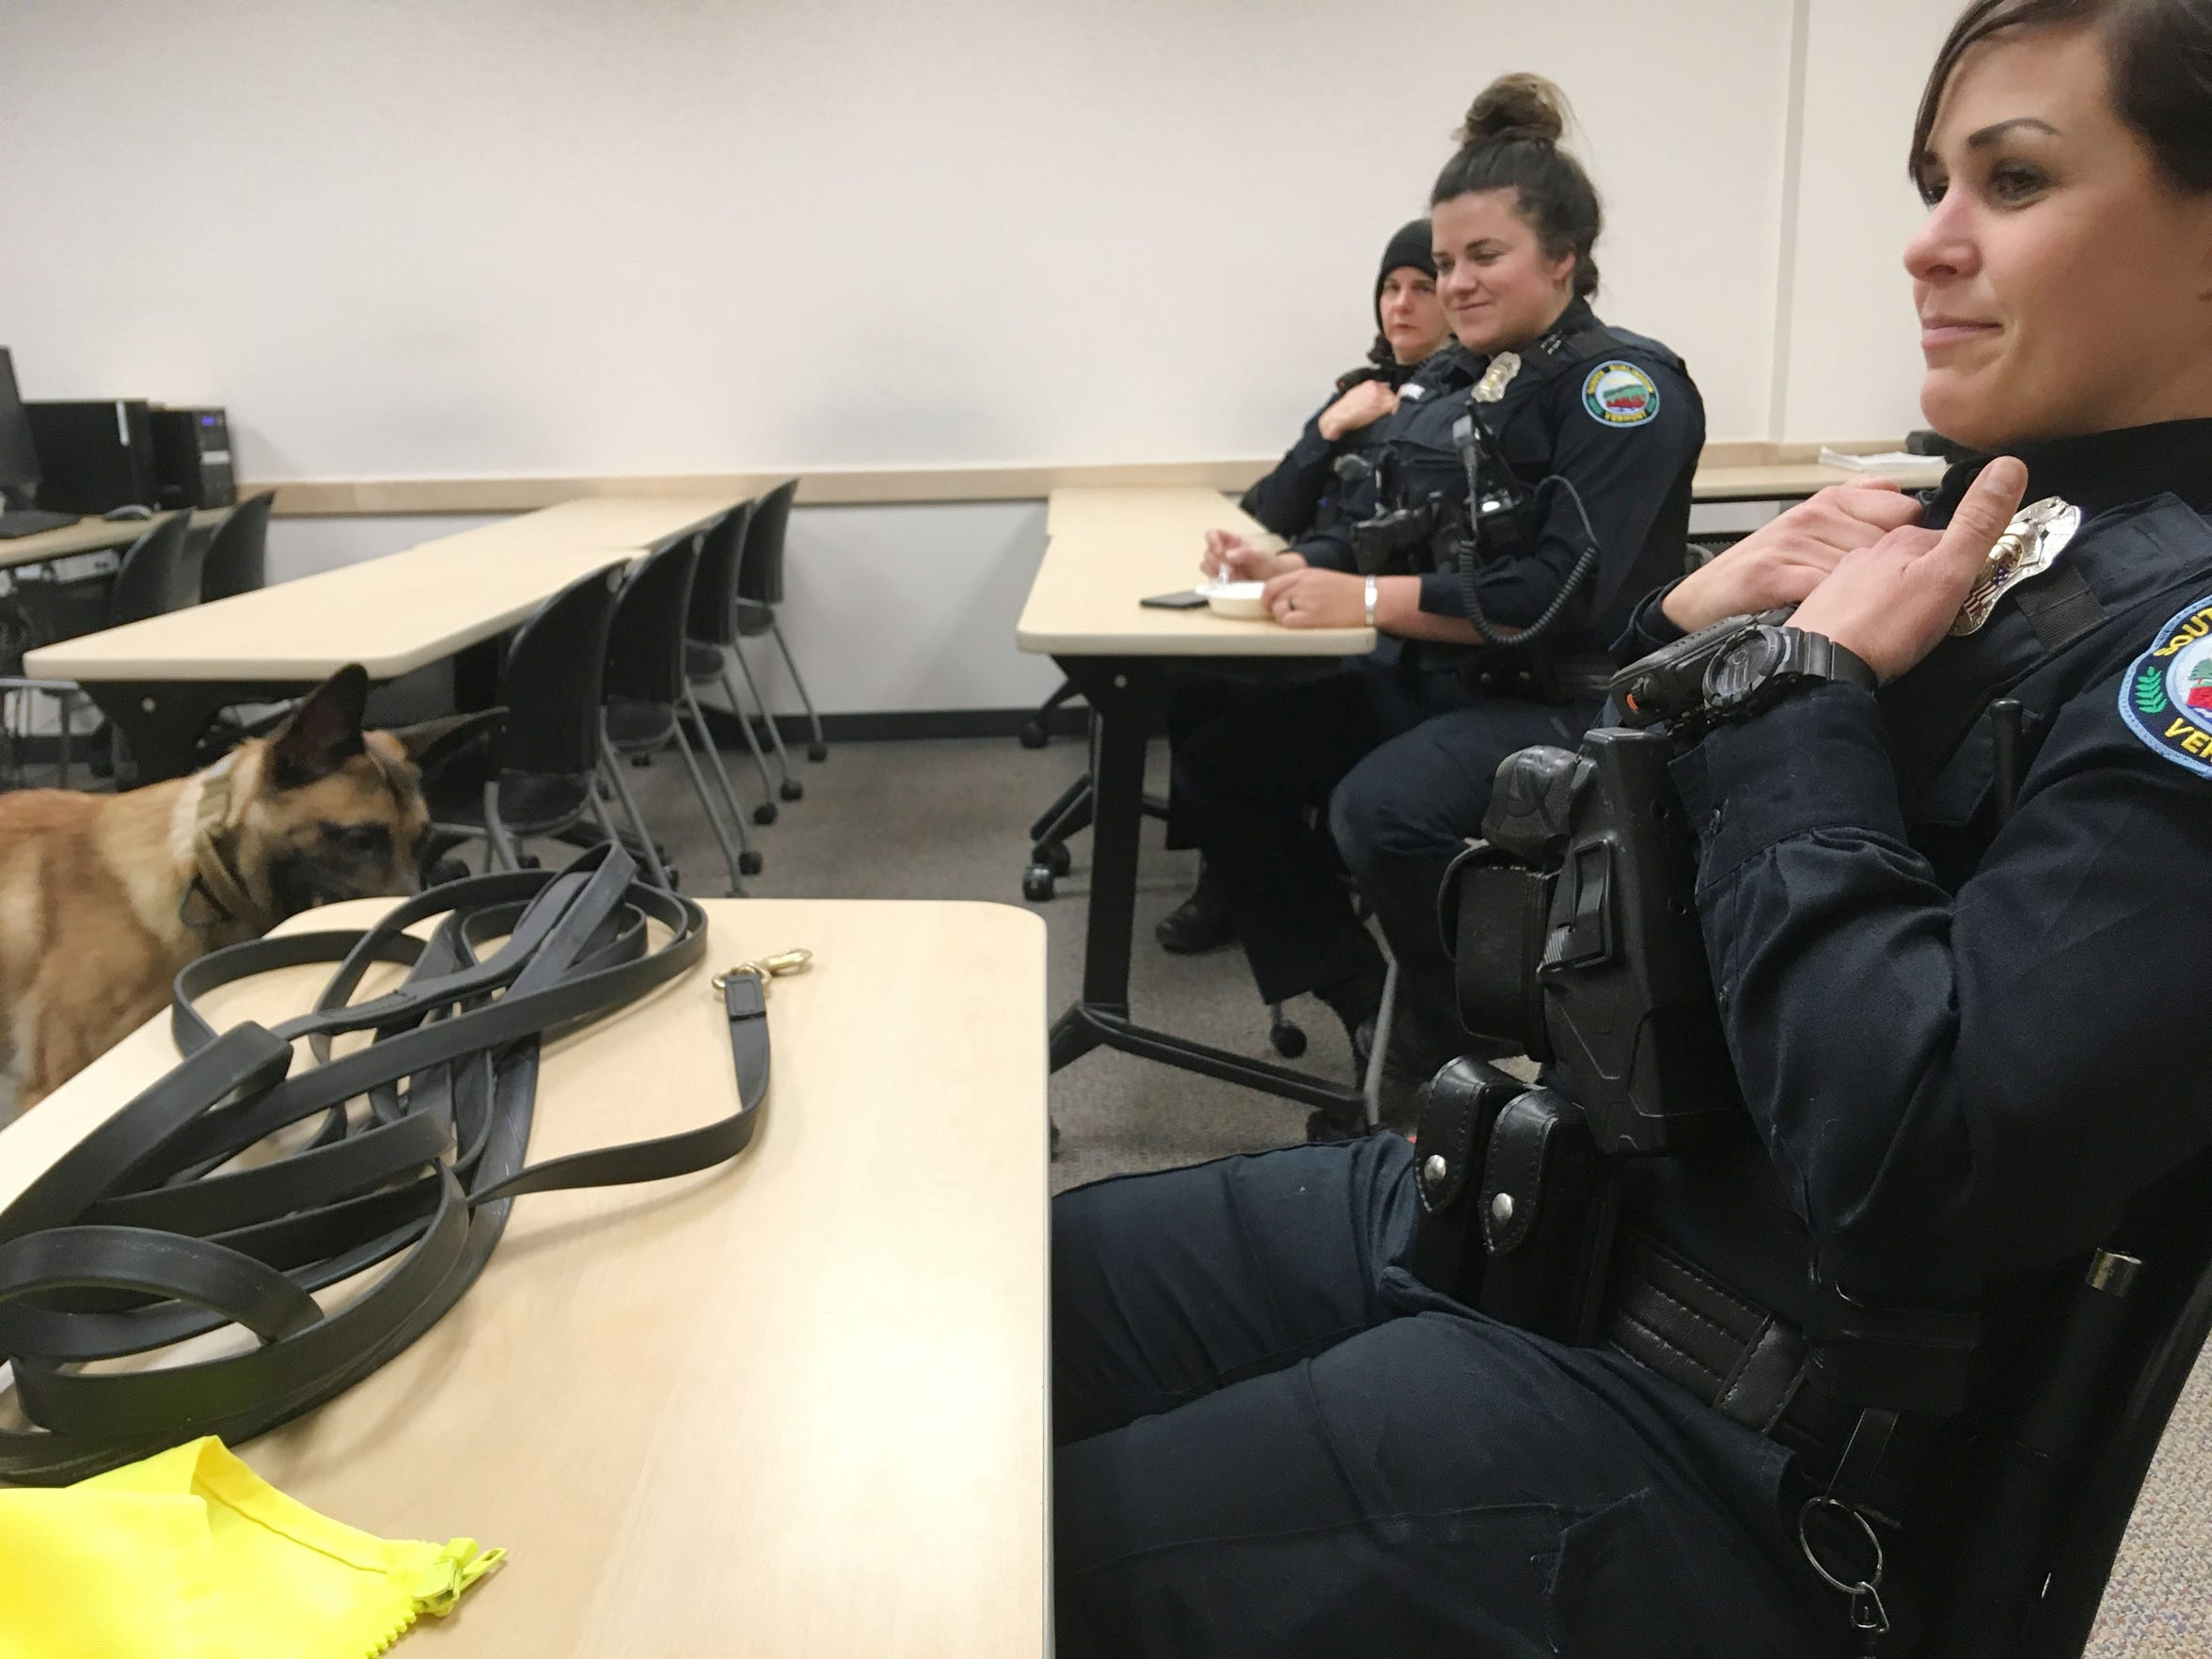 From right, South Burlington Police officers Sarah Bellavance and Kelsey Monroe and Cpl. Karen Chevalier listen during roll call on Dec. 6, 2018. K9 Rush plays in the background.